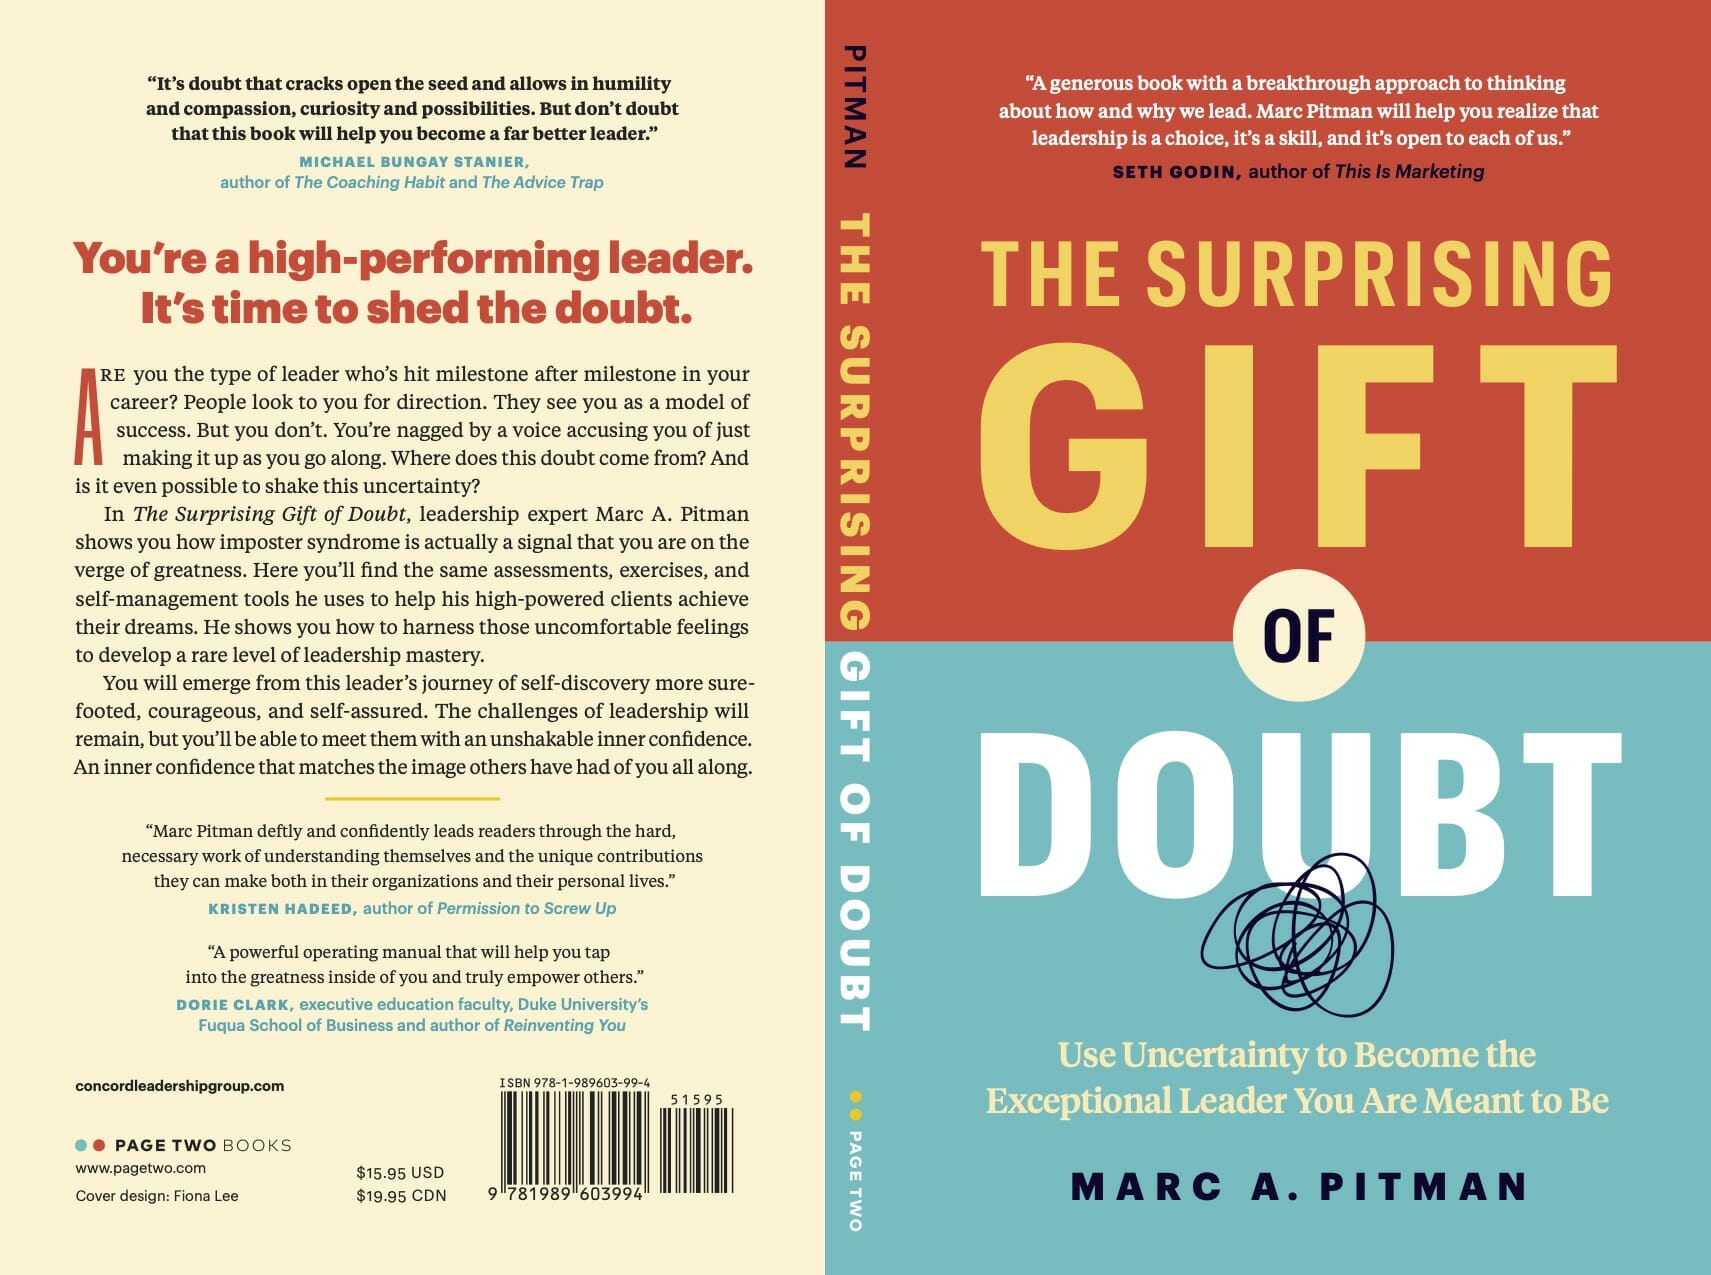 Surprising Gift of Doubt book cover for press